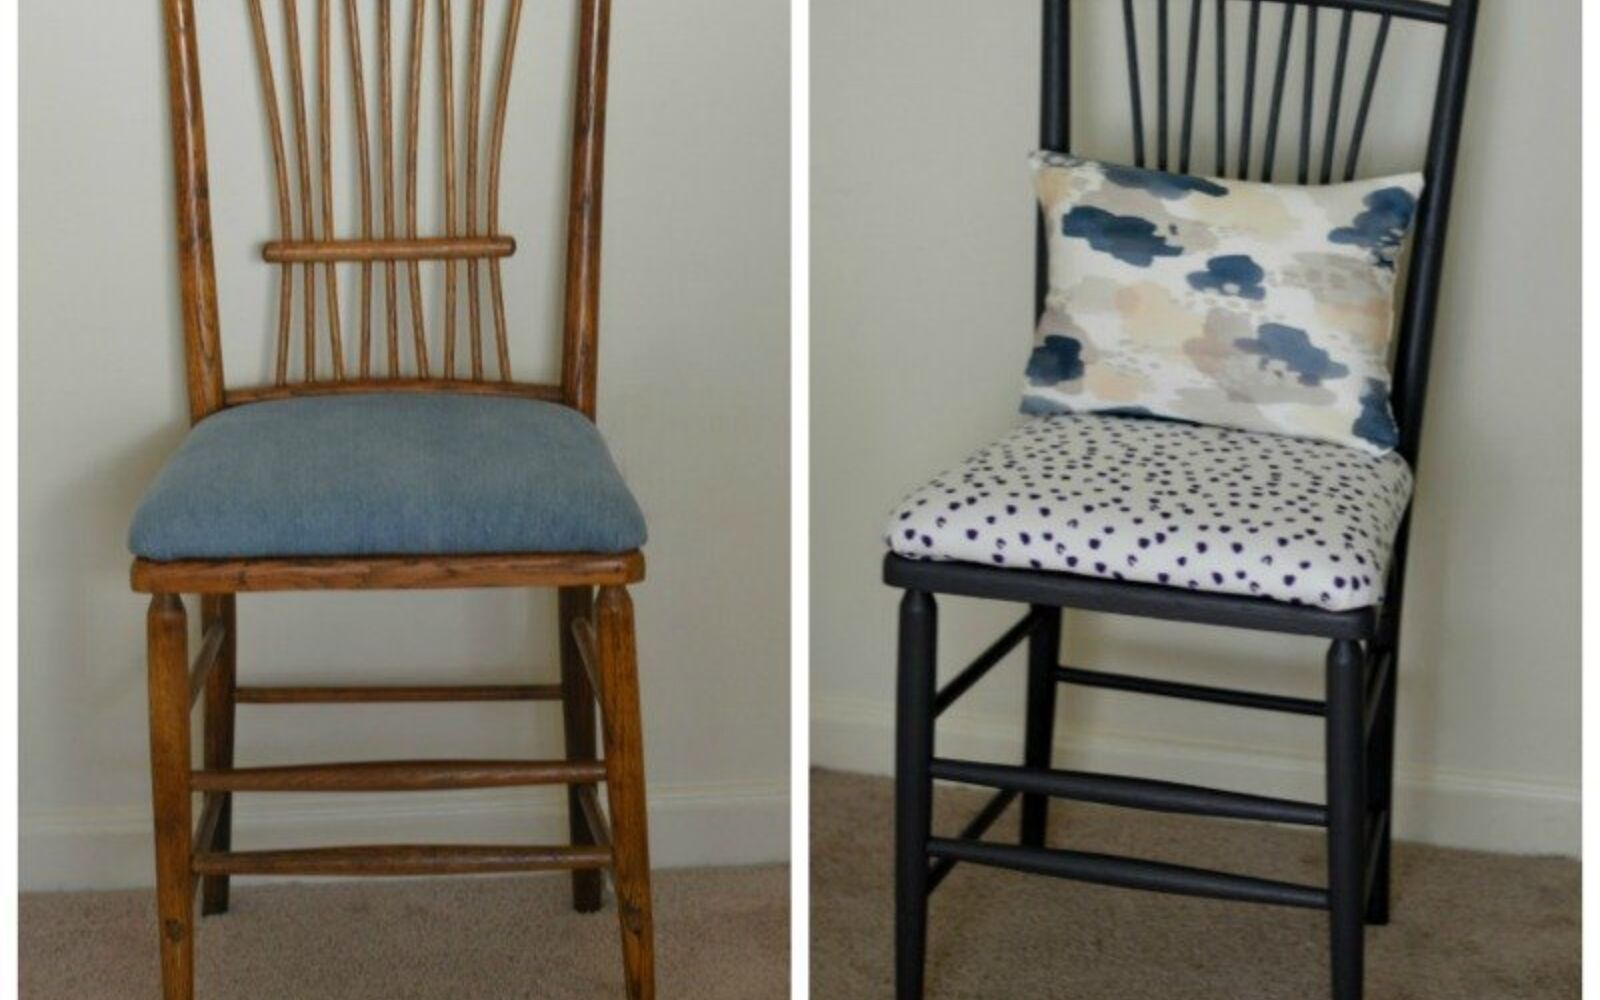 s 14 shocking furniture transformations using fabric, painted furniture, reupholster, She Gave This a Burst of Contrast